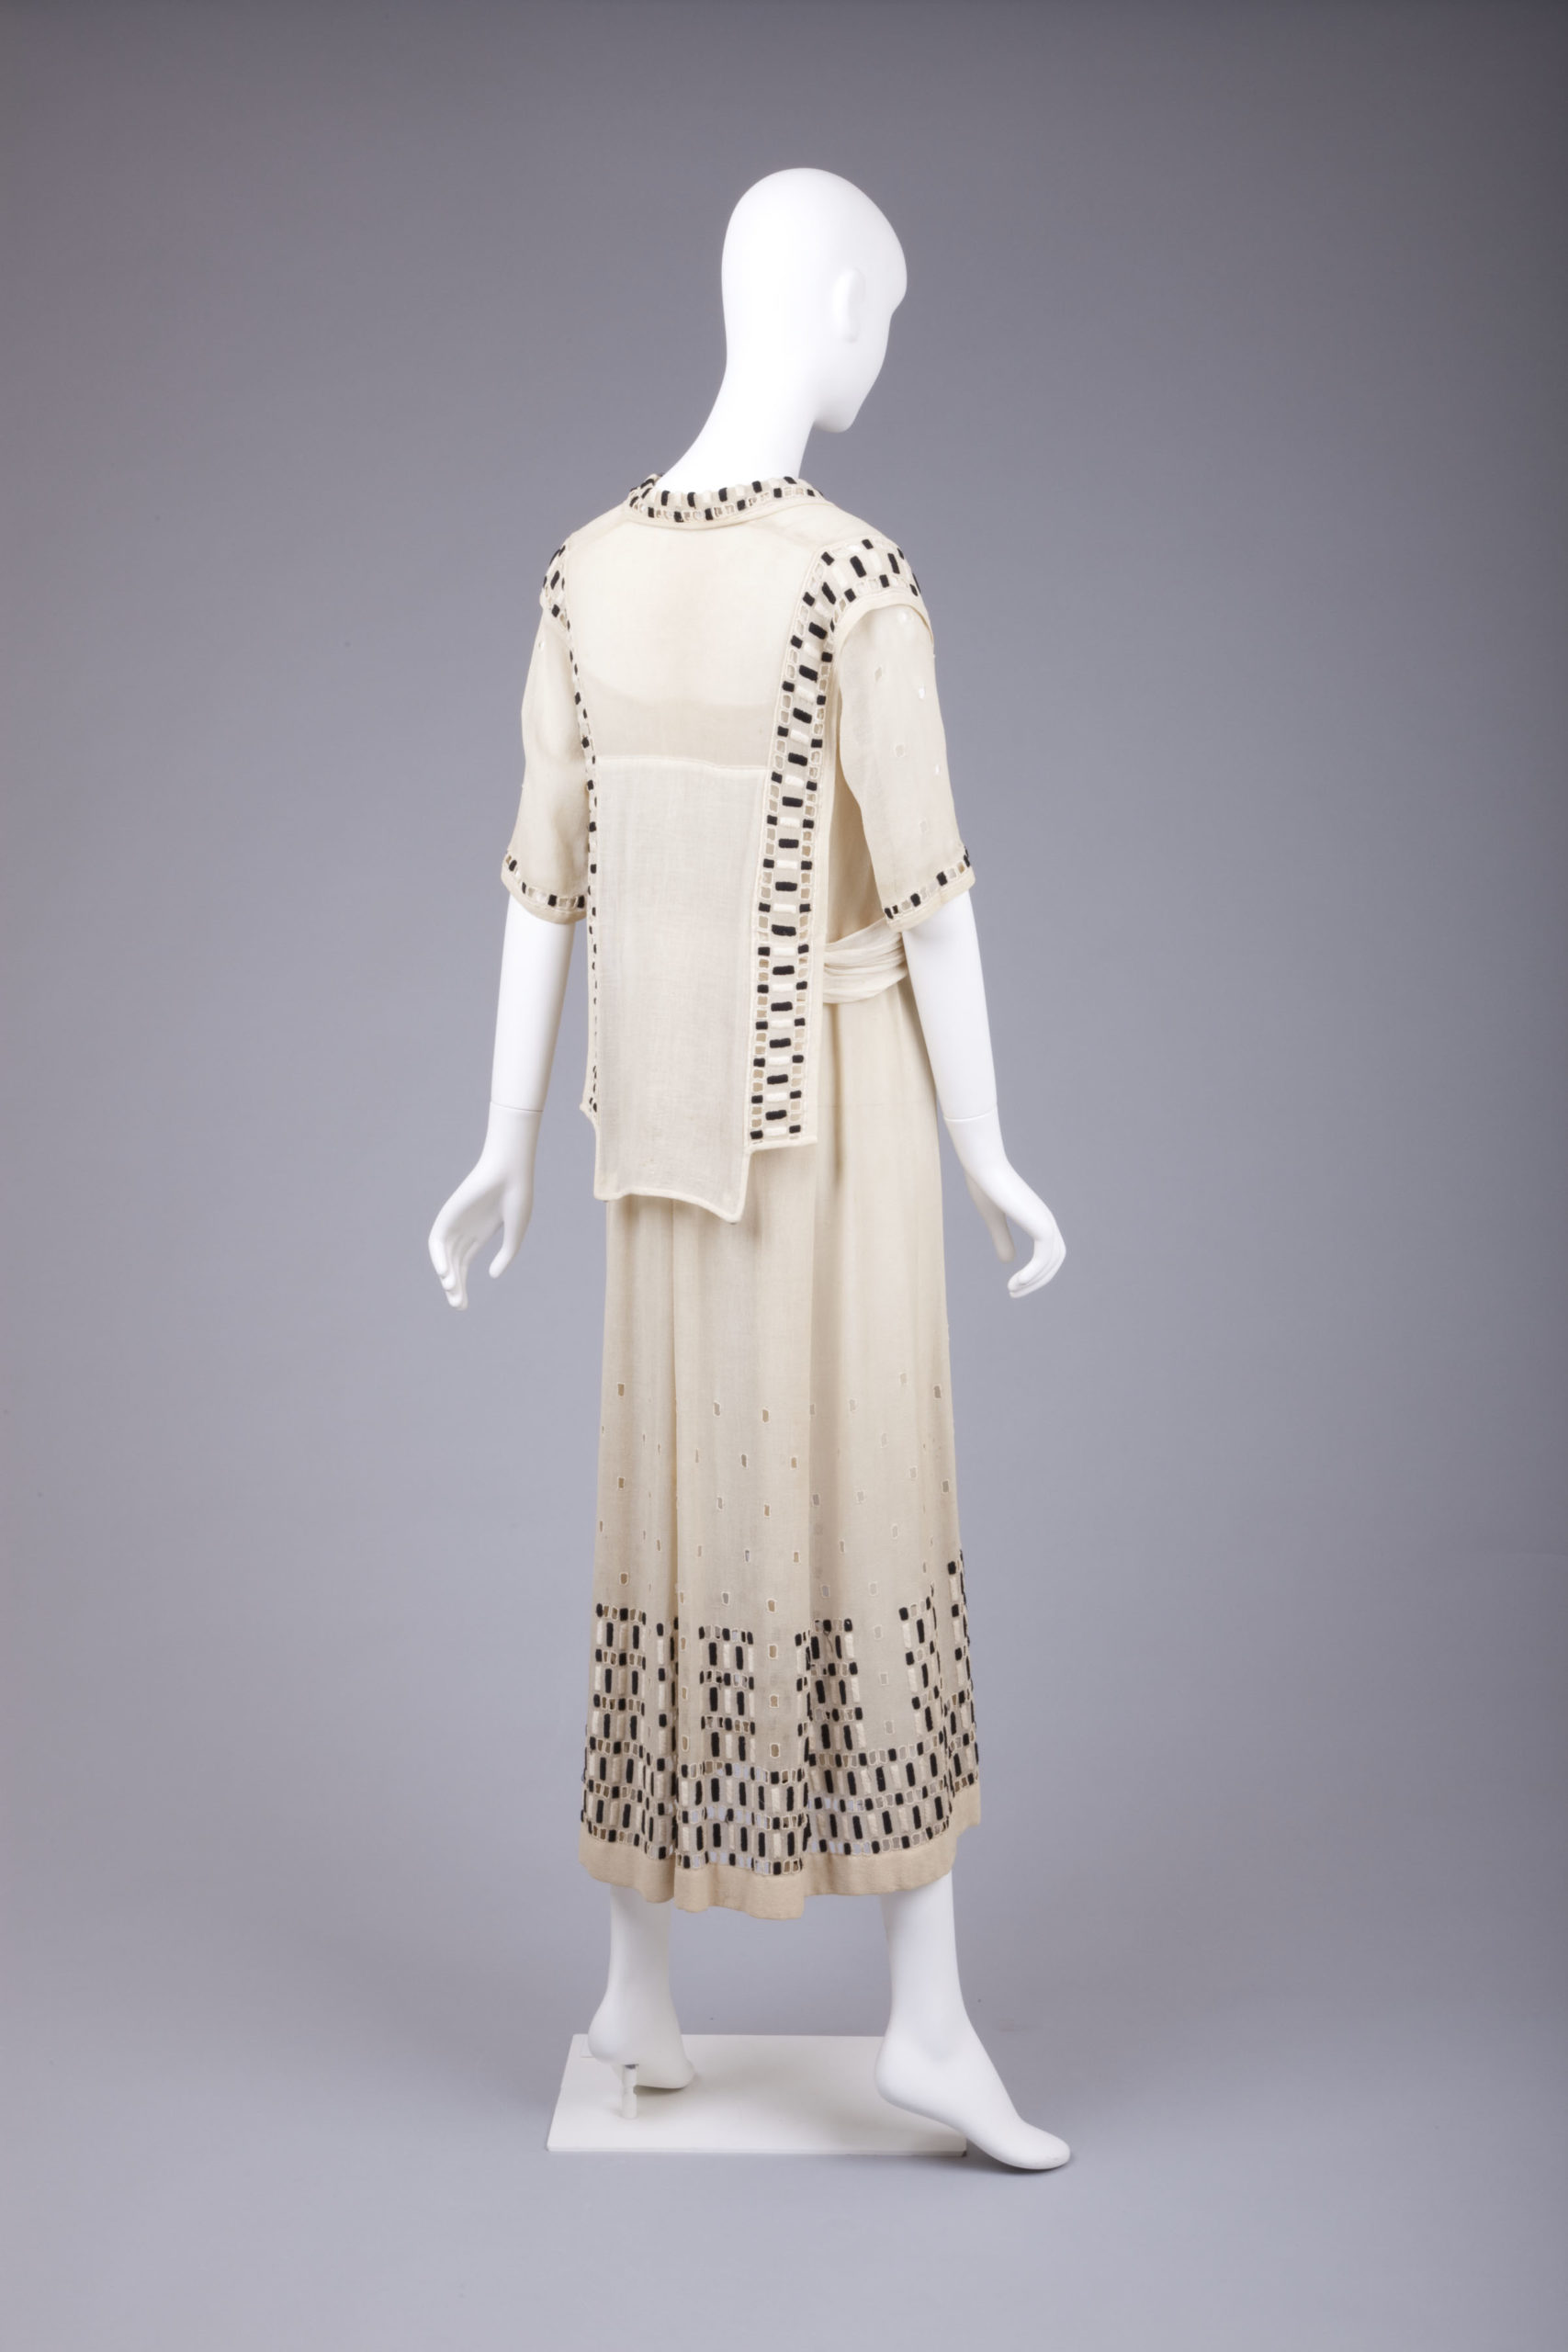 Dress, 1915, Silk with openwork embroidery, Goldstein Museum of Design, Gift of Charlotte Karlen, 2004.001.007